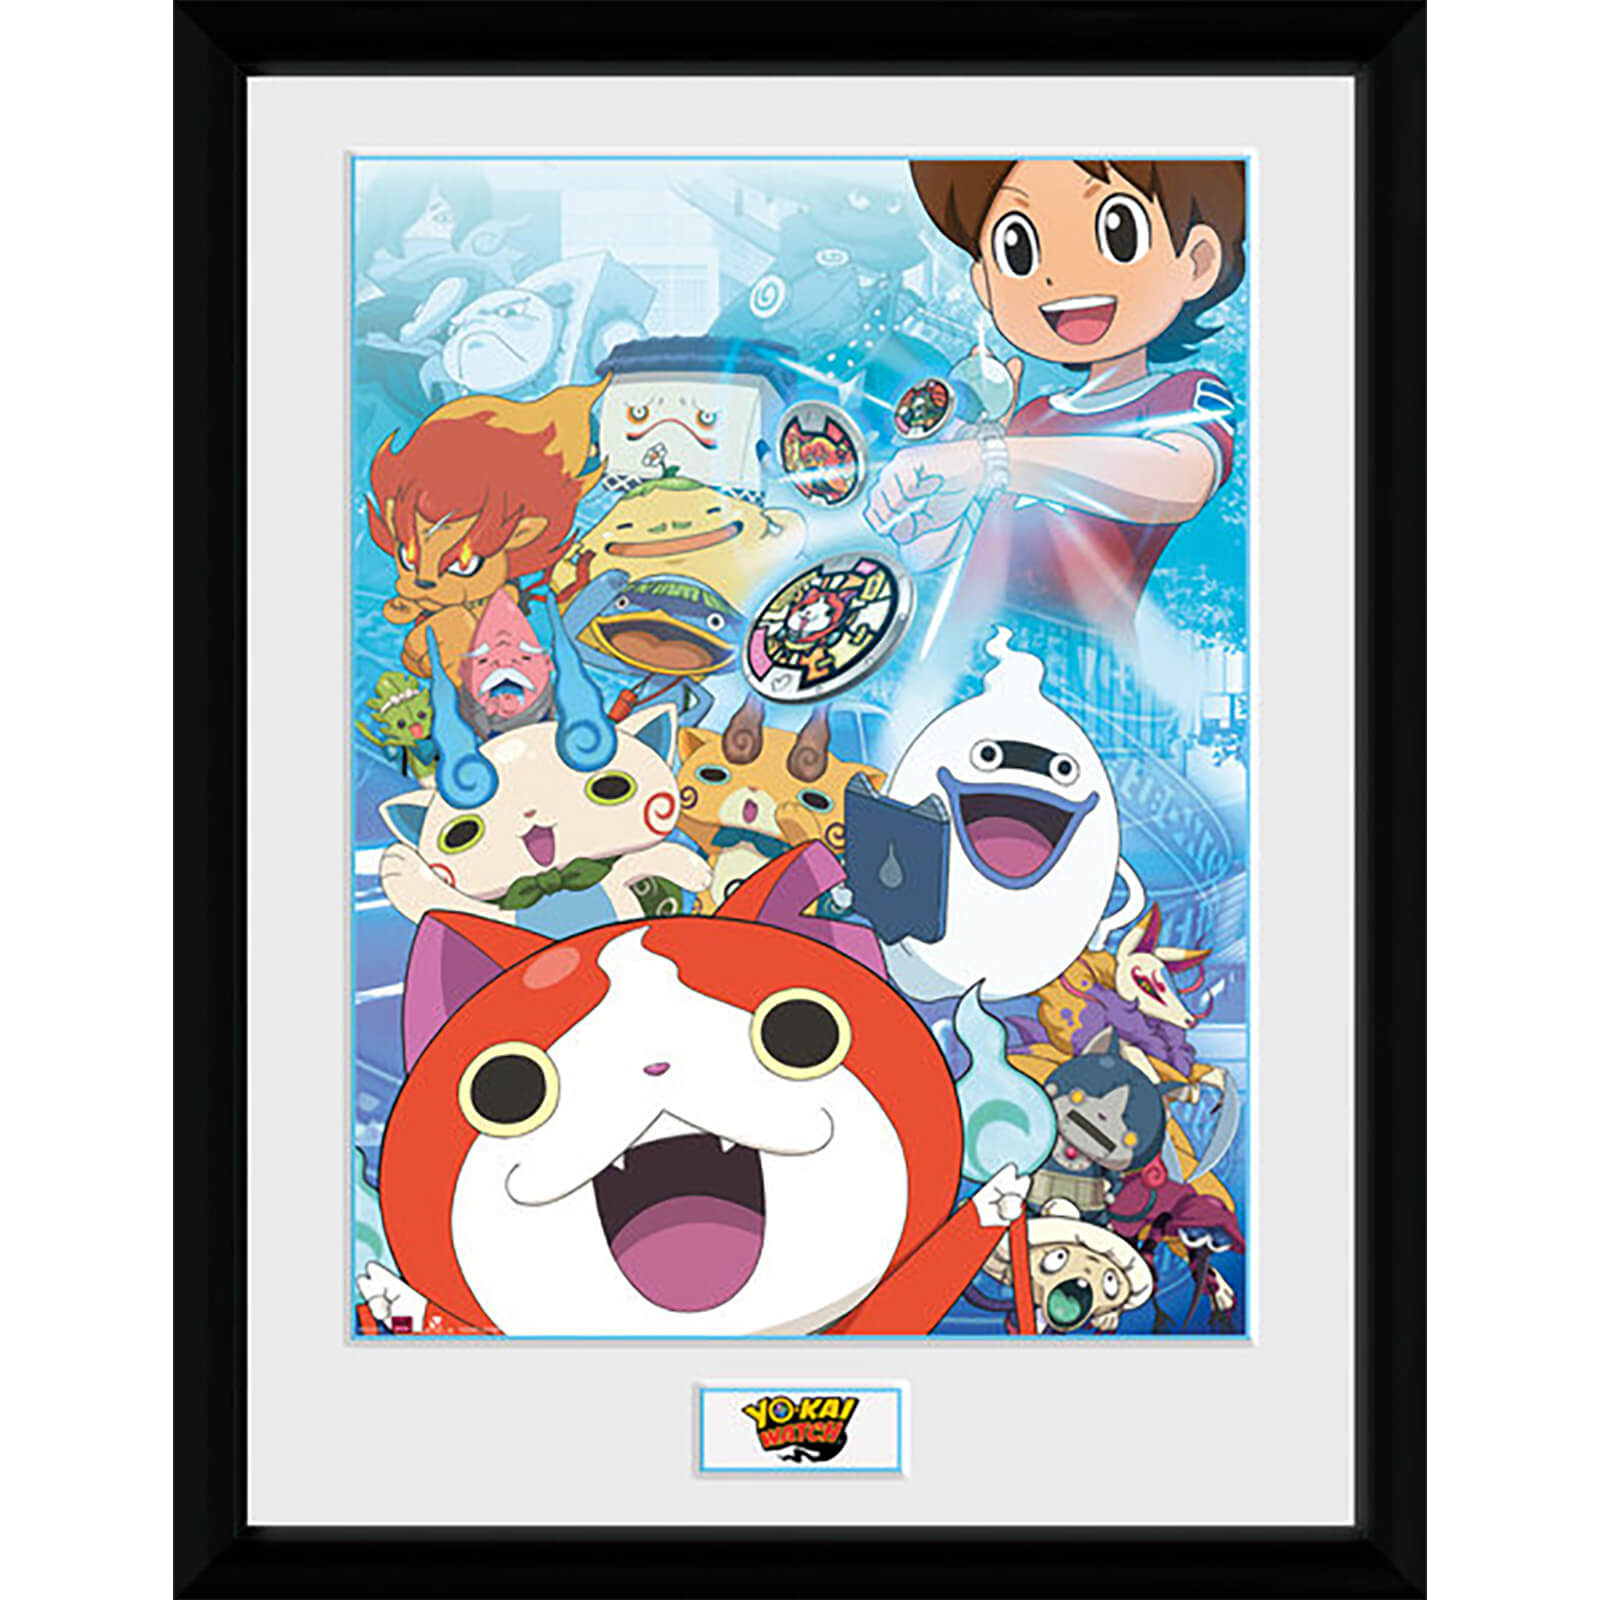 Yo-Kai Watch Key Art - 16 x 12 Inches Framed Photograph